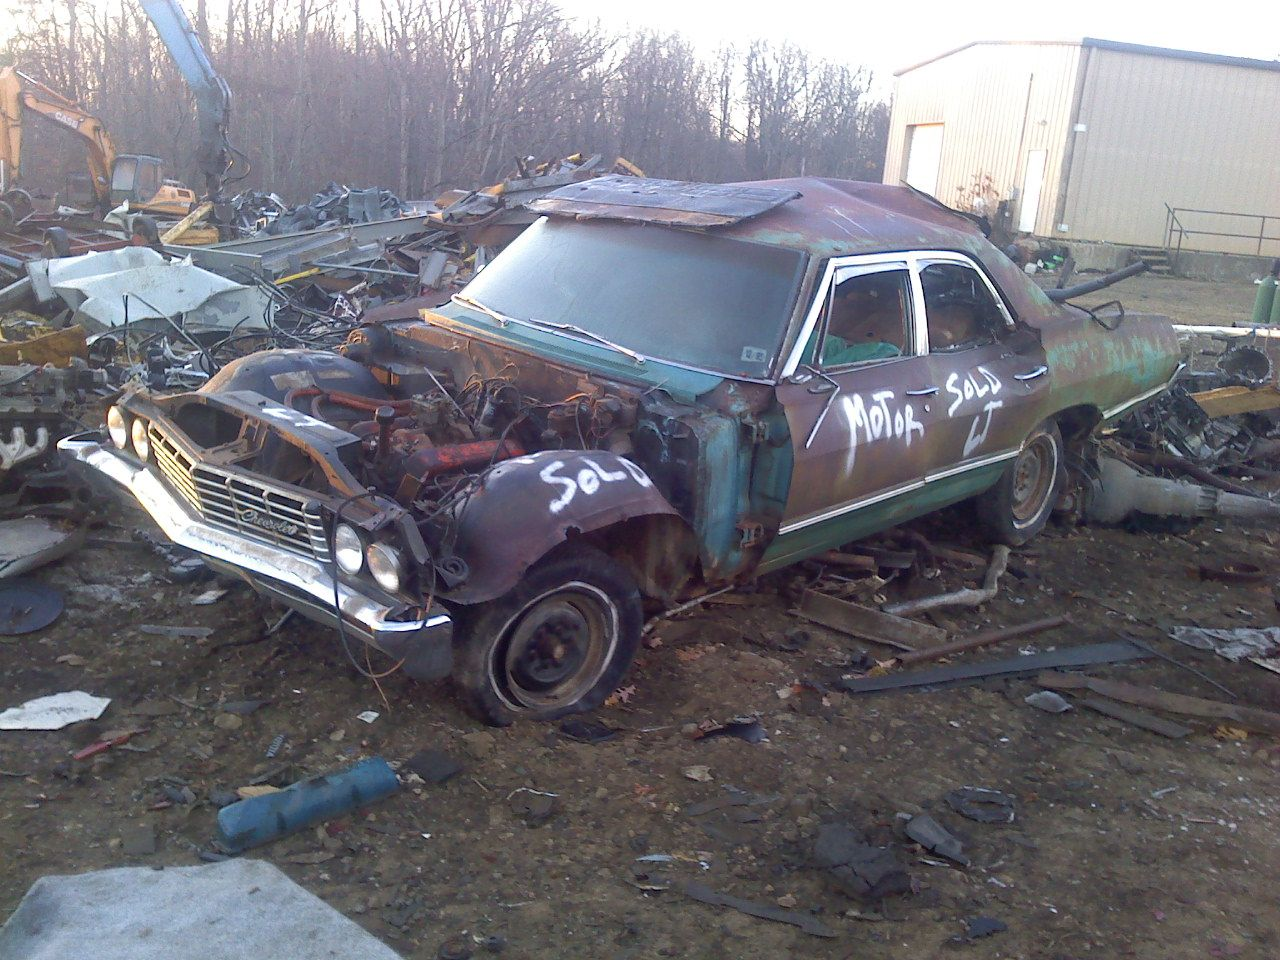 1967 Chevrolet Impala sedan with 283/pg. I wanted to buy this car so ...